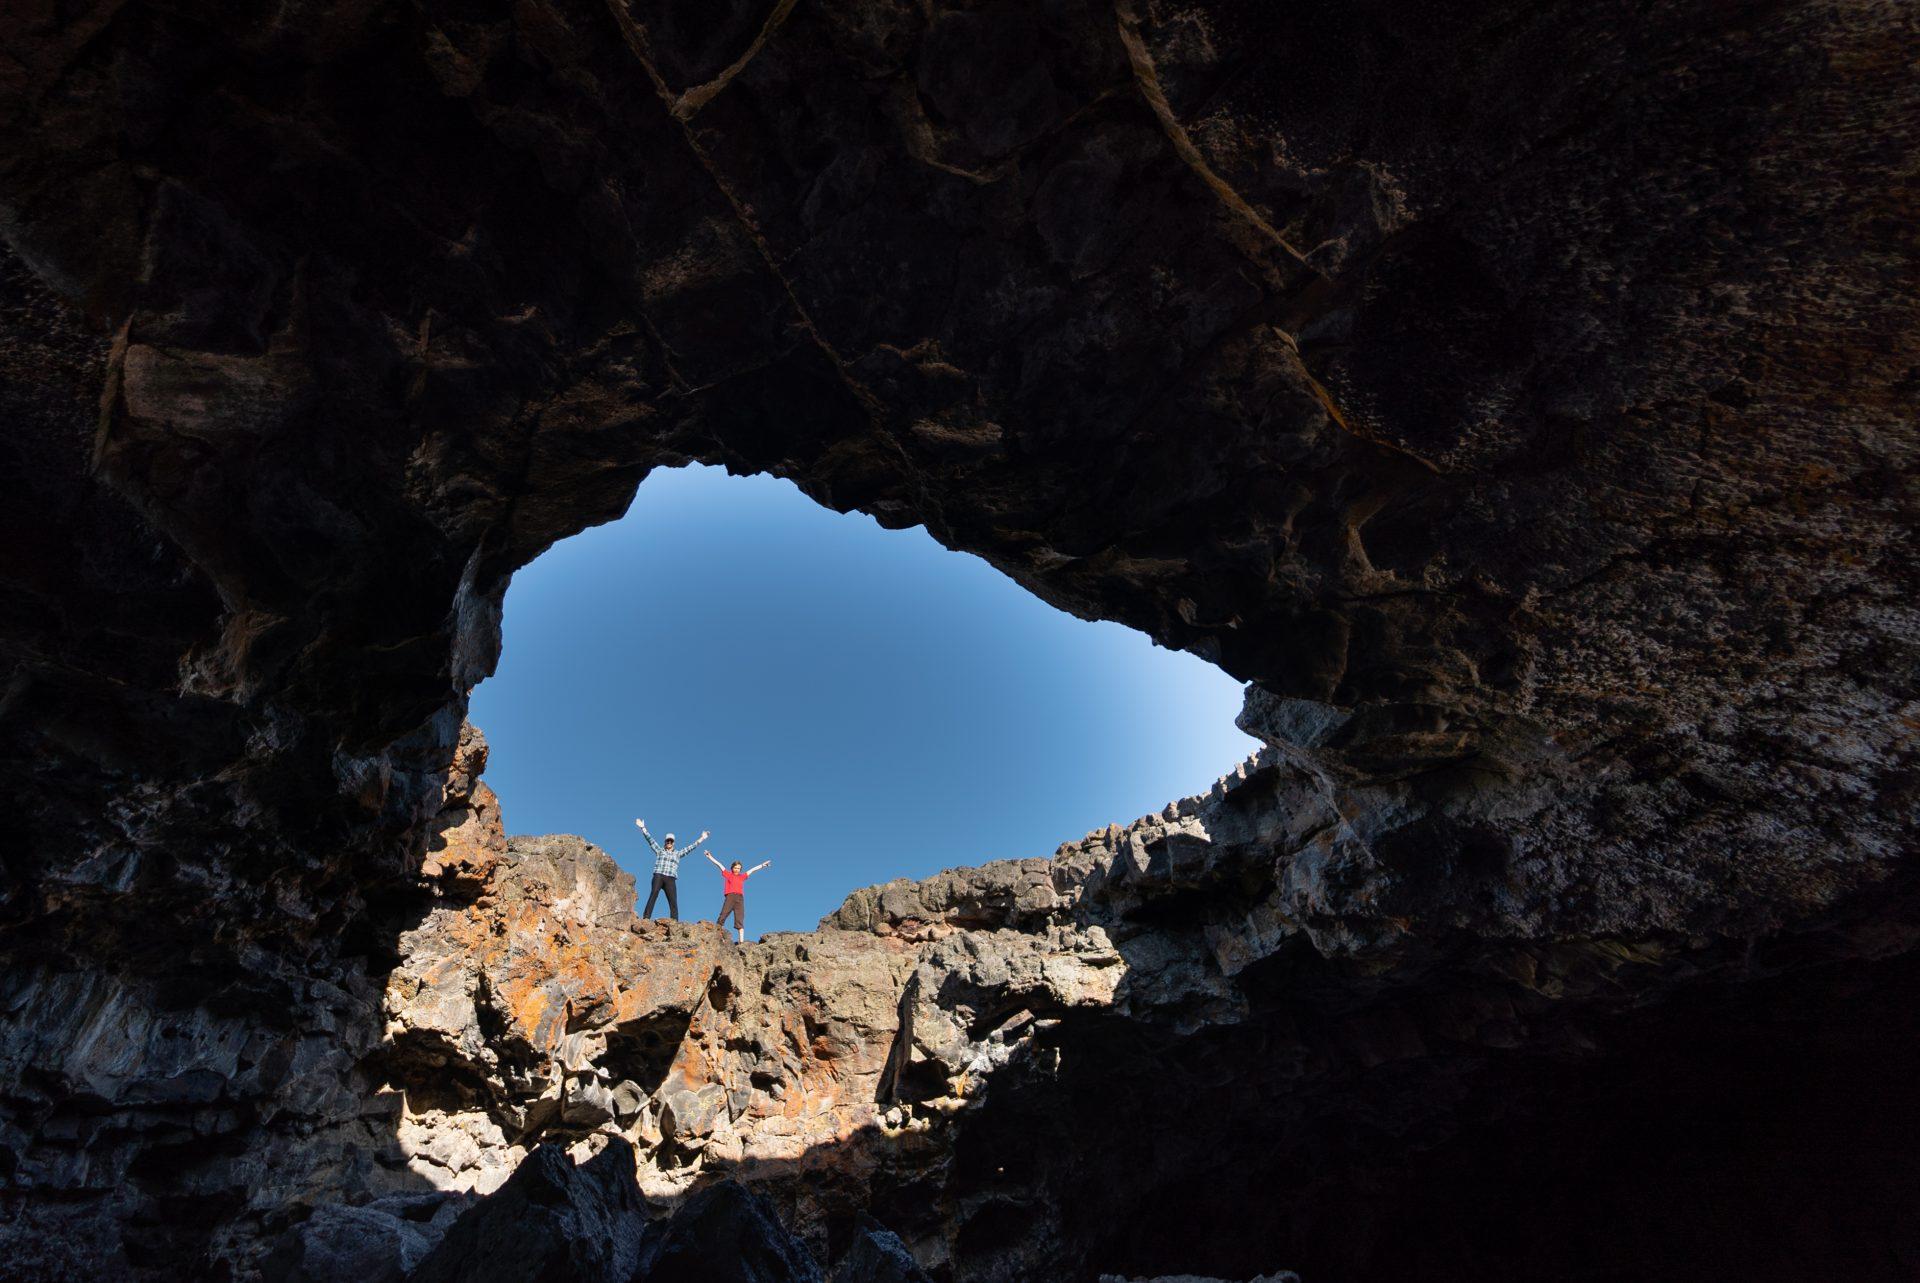 Indian Tunnel in Craters of the Moon National Park